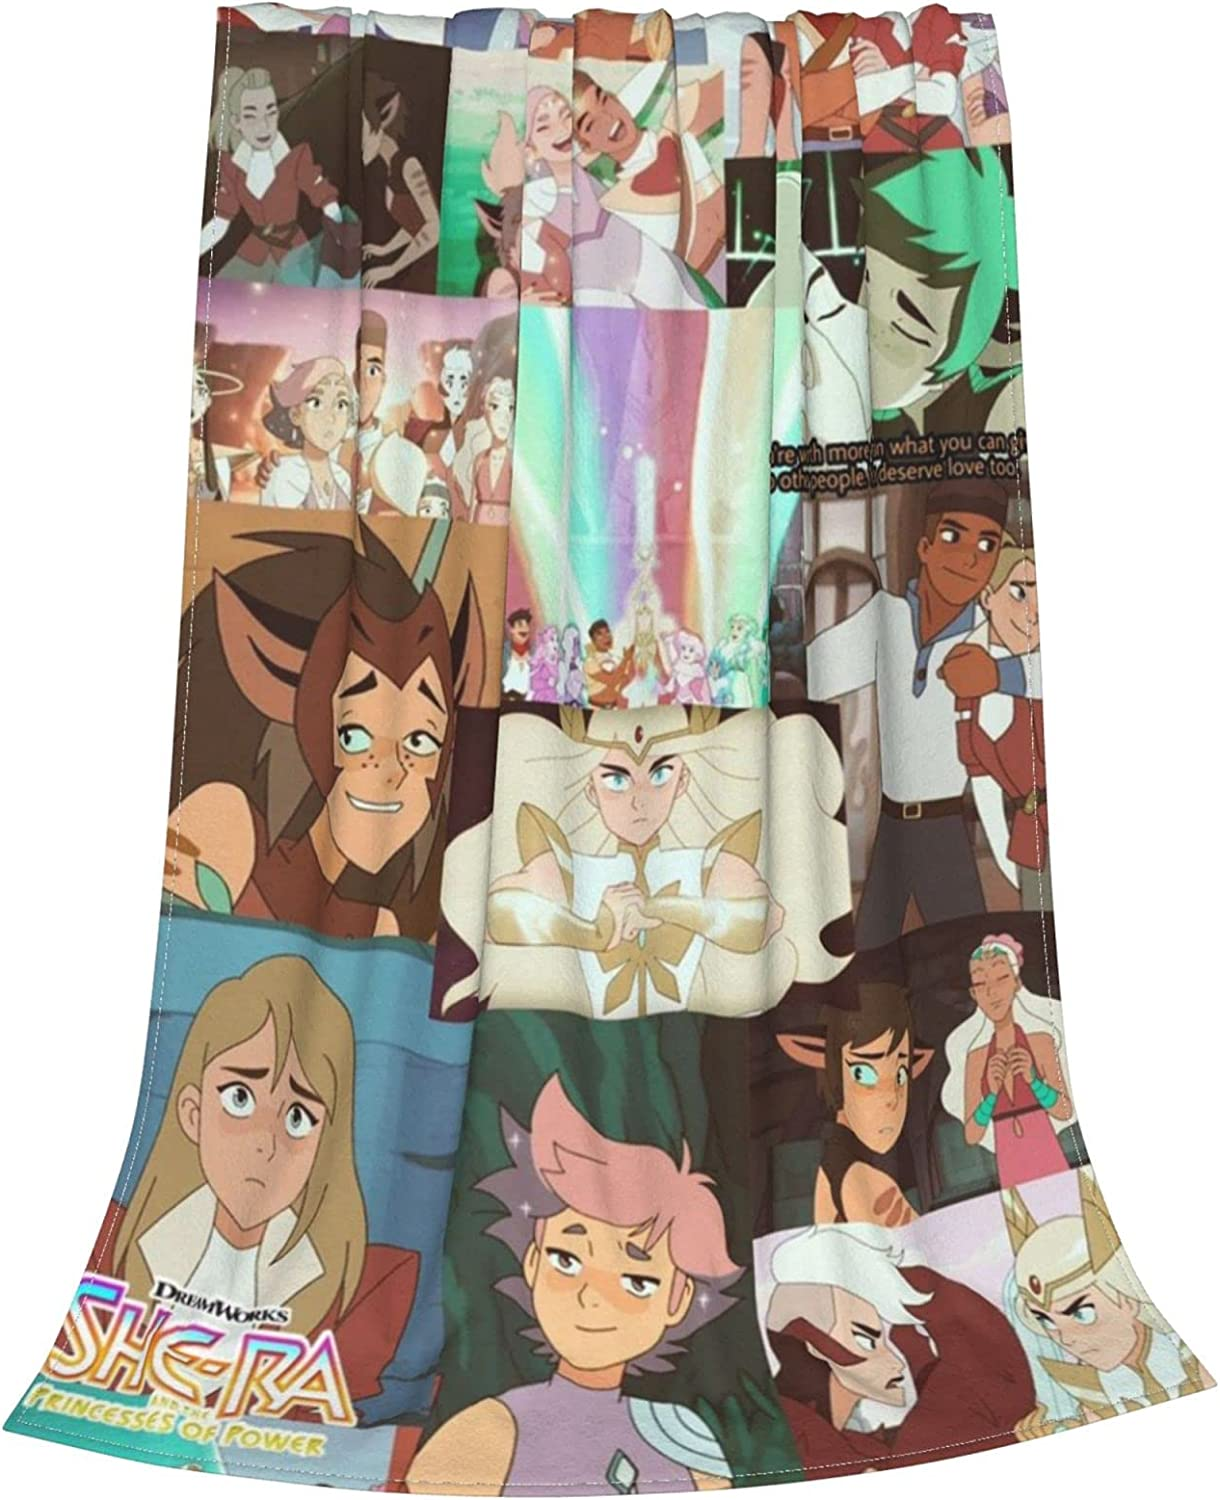 THEFUNMAKE Cozy Flannel Blanket Po-wer Max 57% OFF Fleece OFFicial shop She-Ra-Princess of